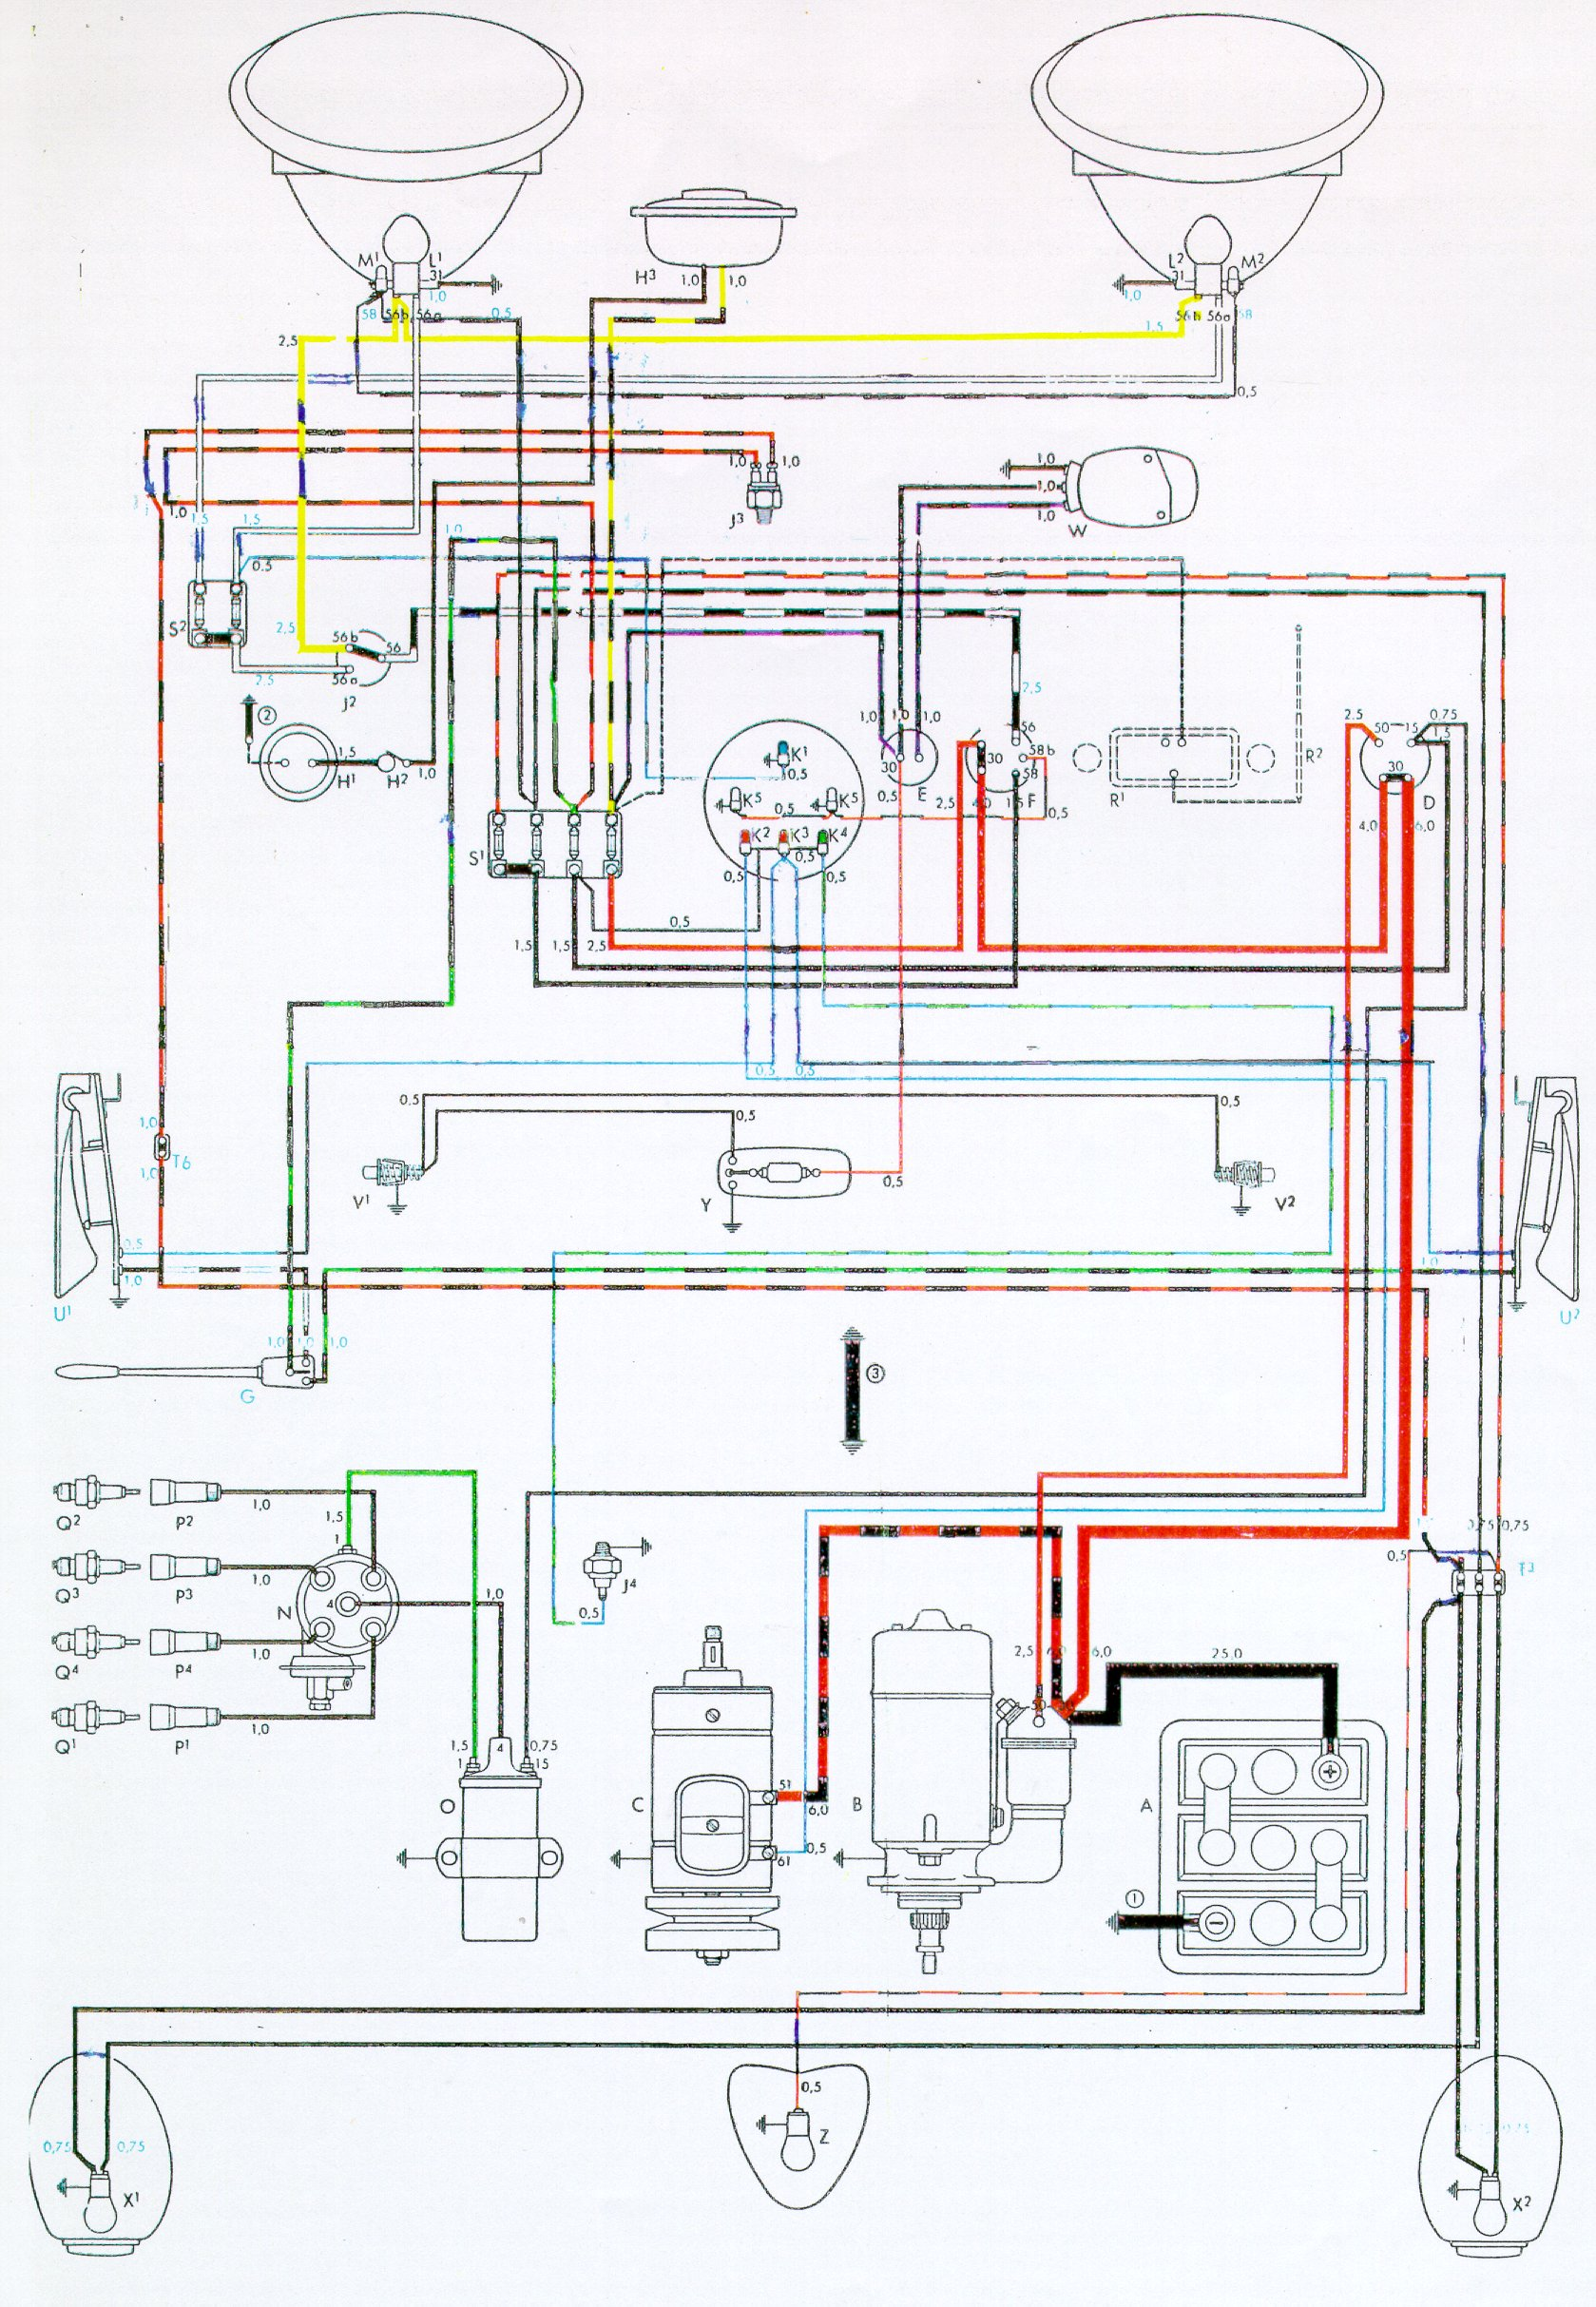 wiring diagram for 1975 mustang vw wiring diagrams beetle wiring diagram for 1975 #3